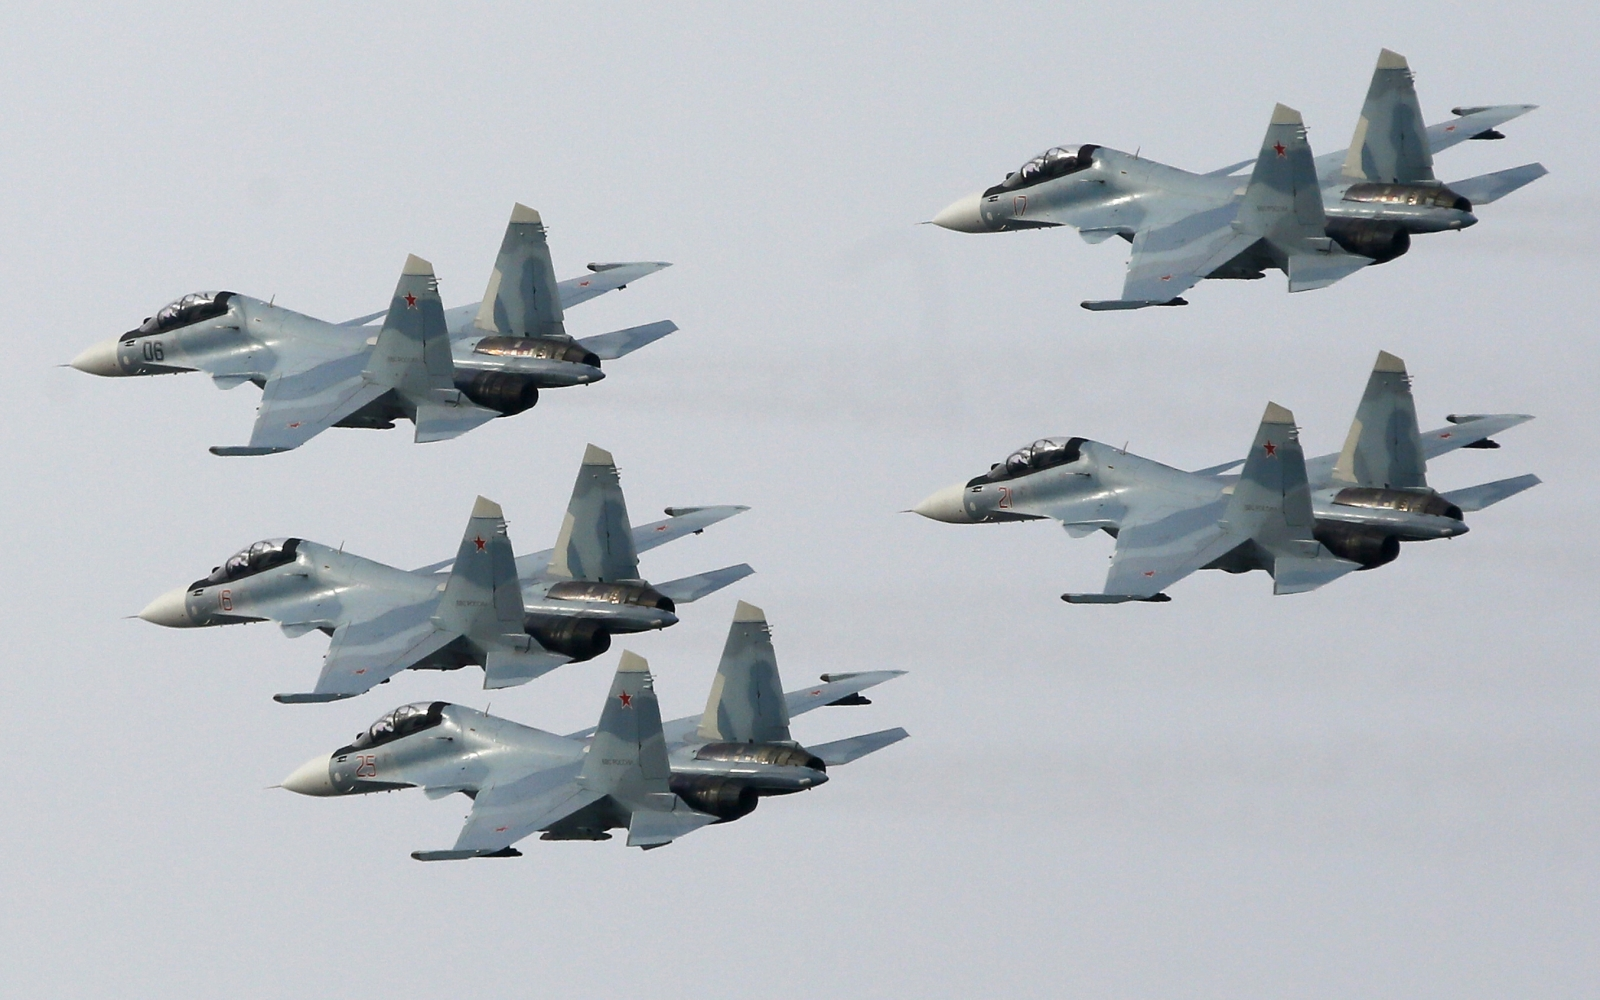 Nato F-16s Scrambled Over Baltic After Russian Military Spy Plane